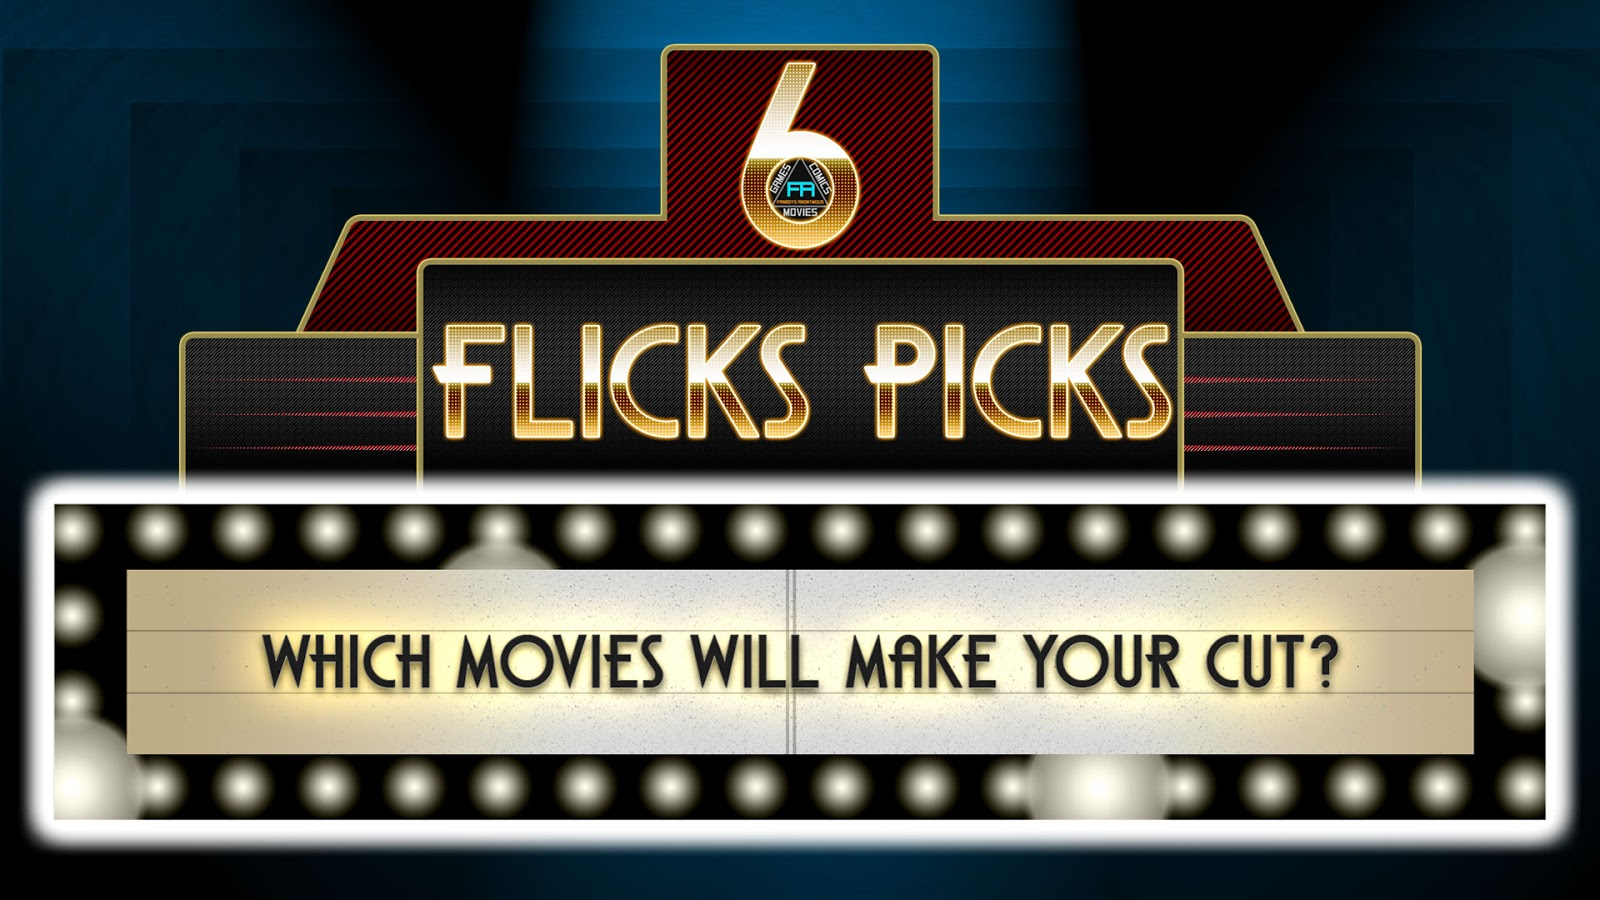 What movies are coming out March 2016 6 Flicks Picks